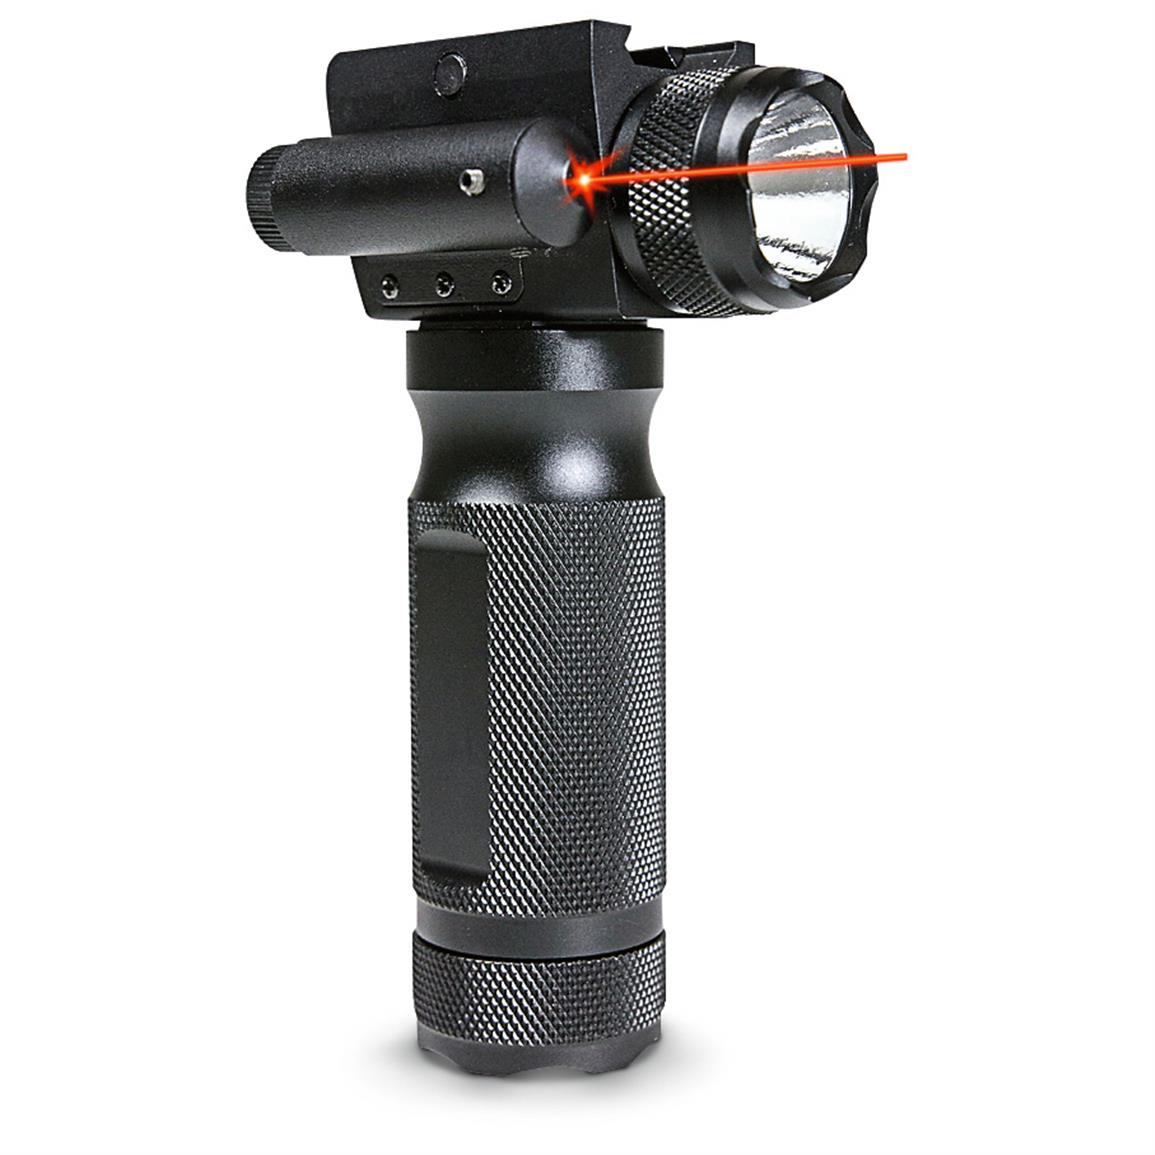 Firefield 230-lumen Flashlight Foregrip with Red Laser